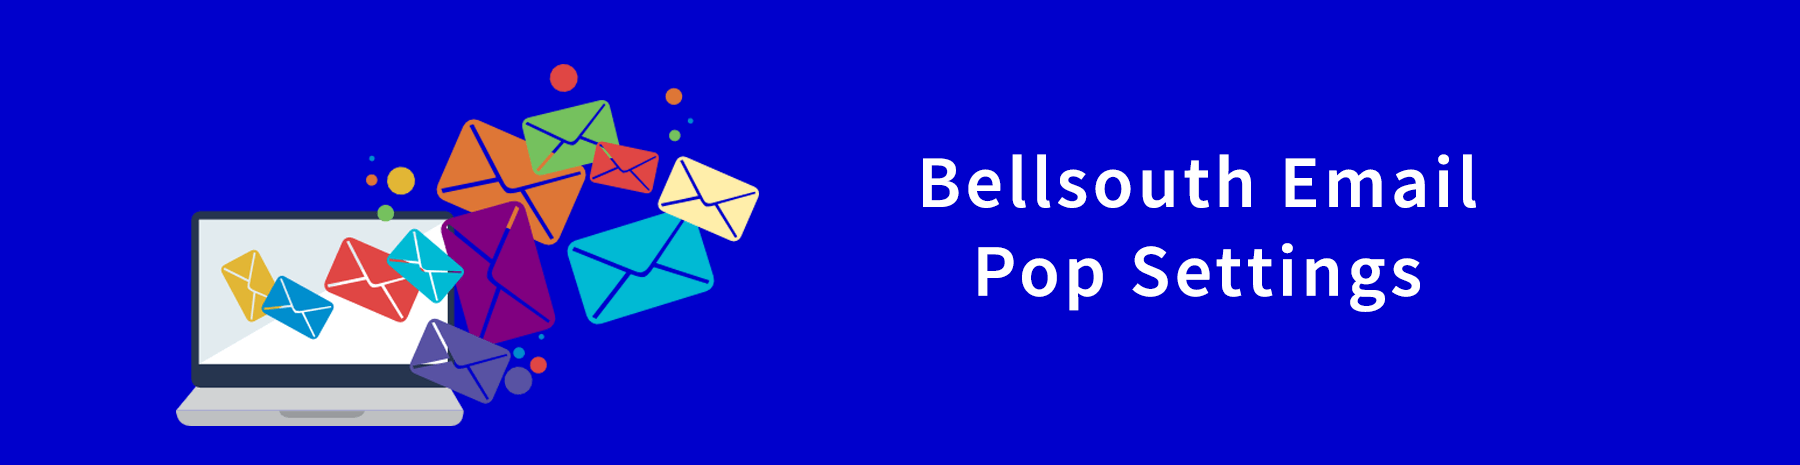 Bellsouth Email Pop Settings